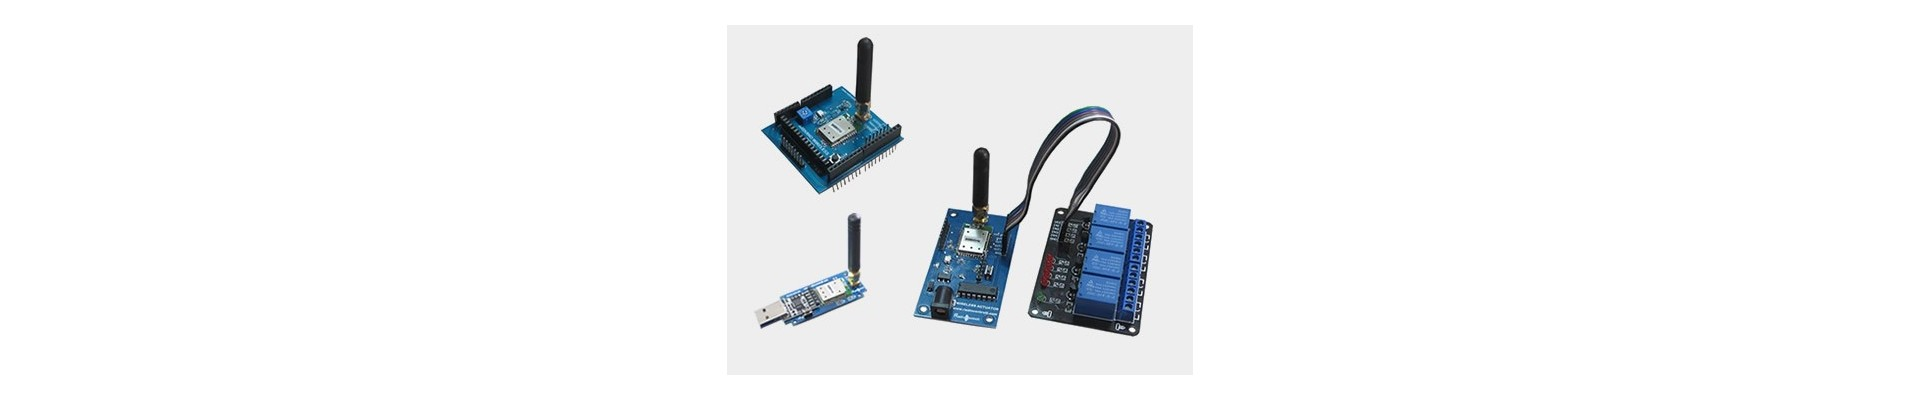 Wireless Actuator for Home Automation